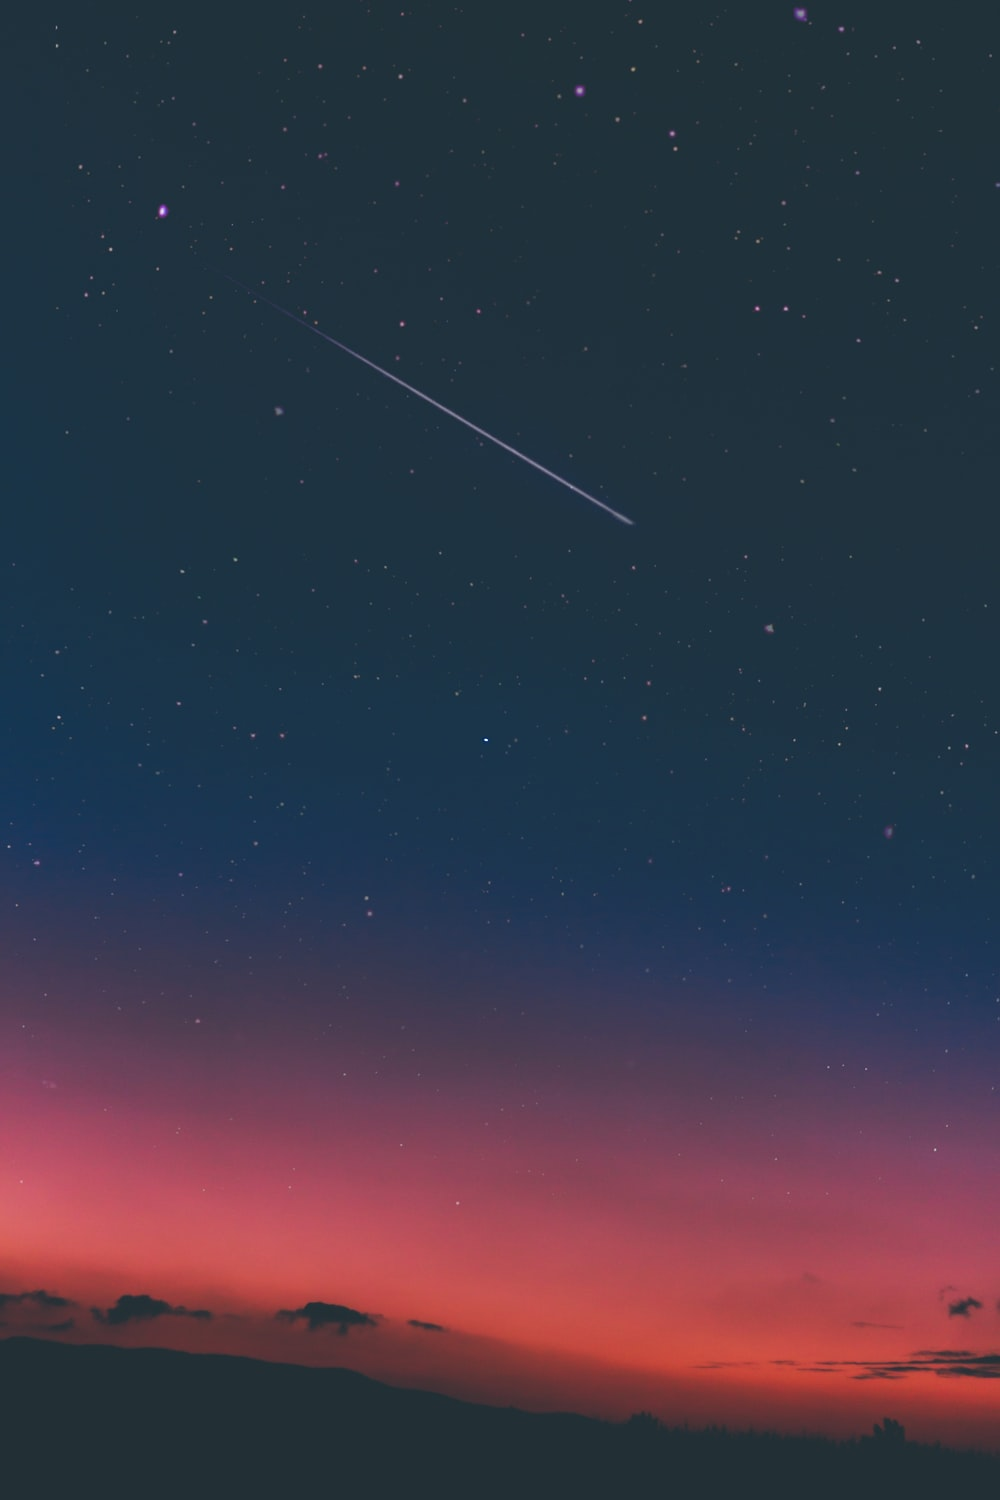 20 Space Pictures Images Hd Download Free Photos On Unsplash